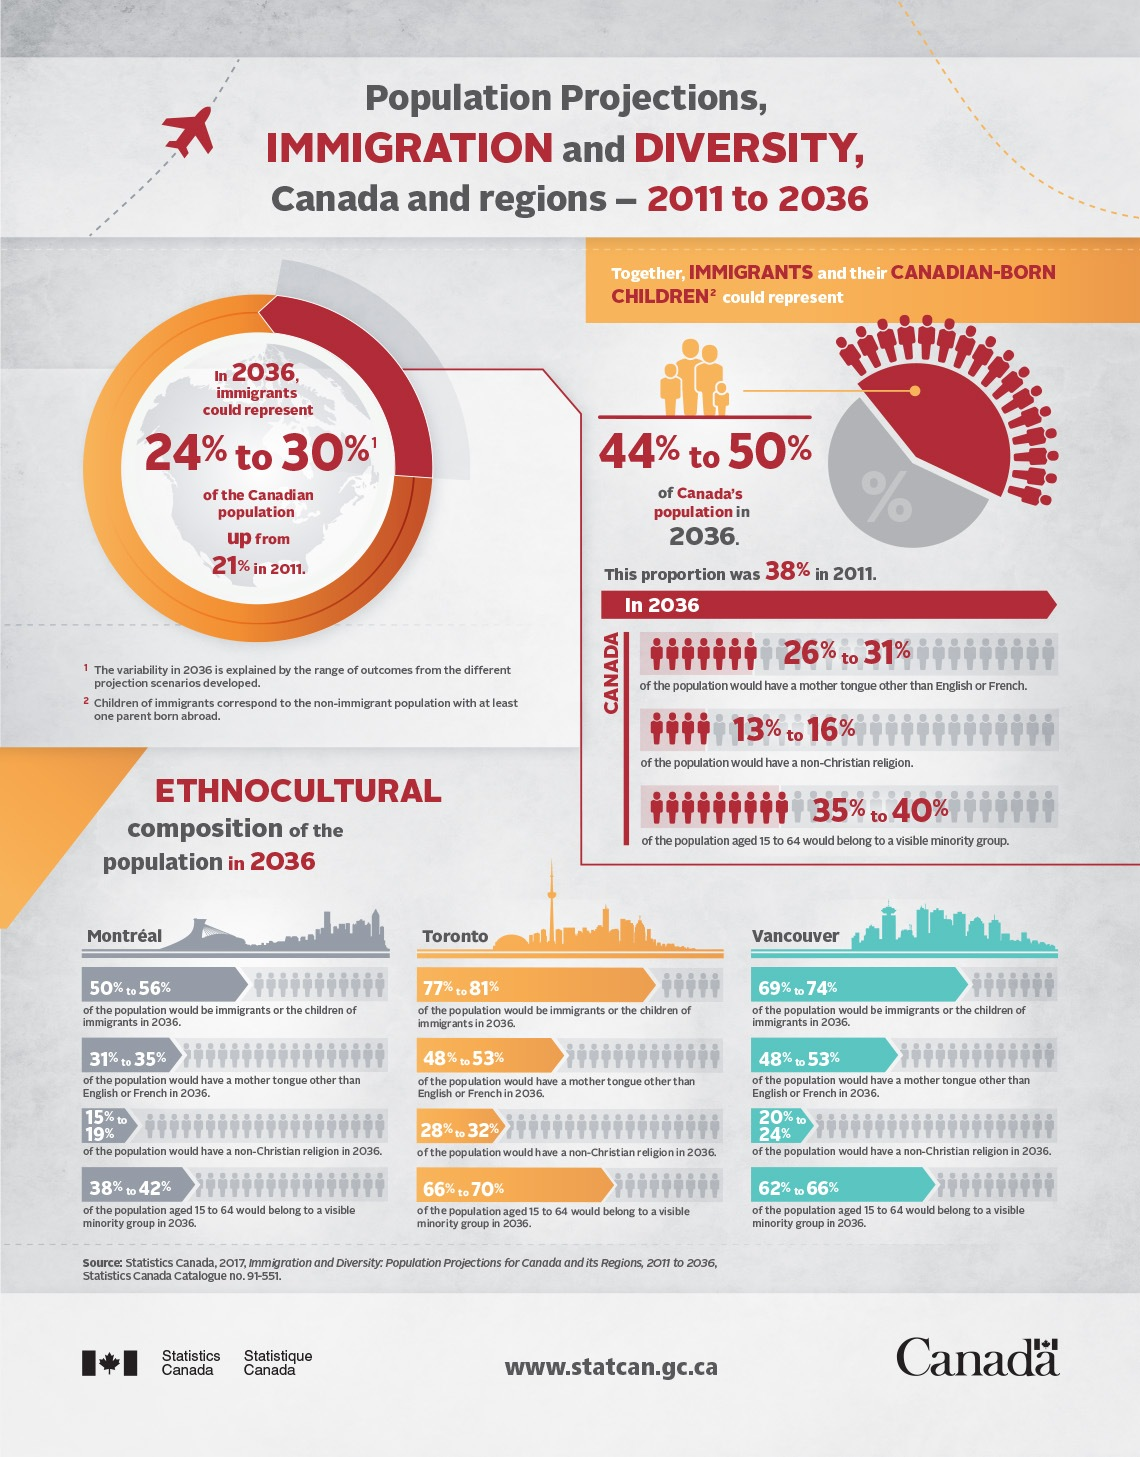 Population Projections for Canada 2011 - 2036 (StatsCan)